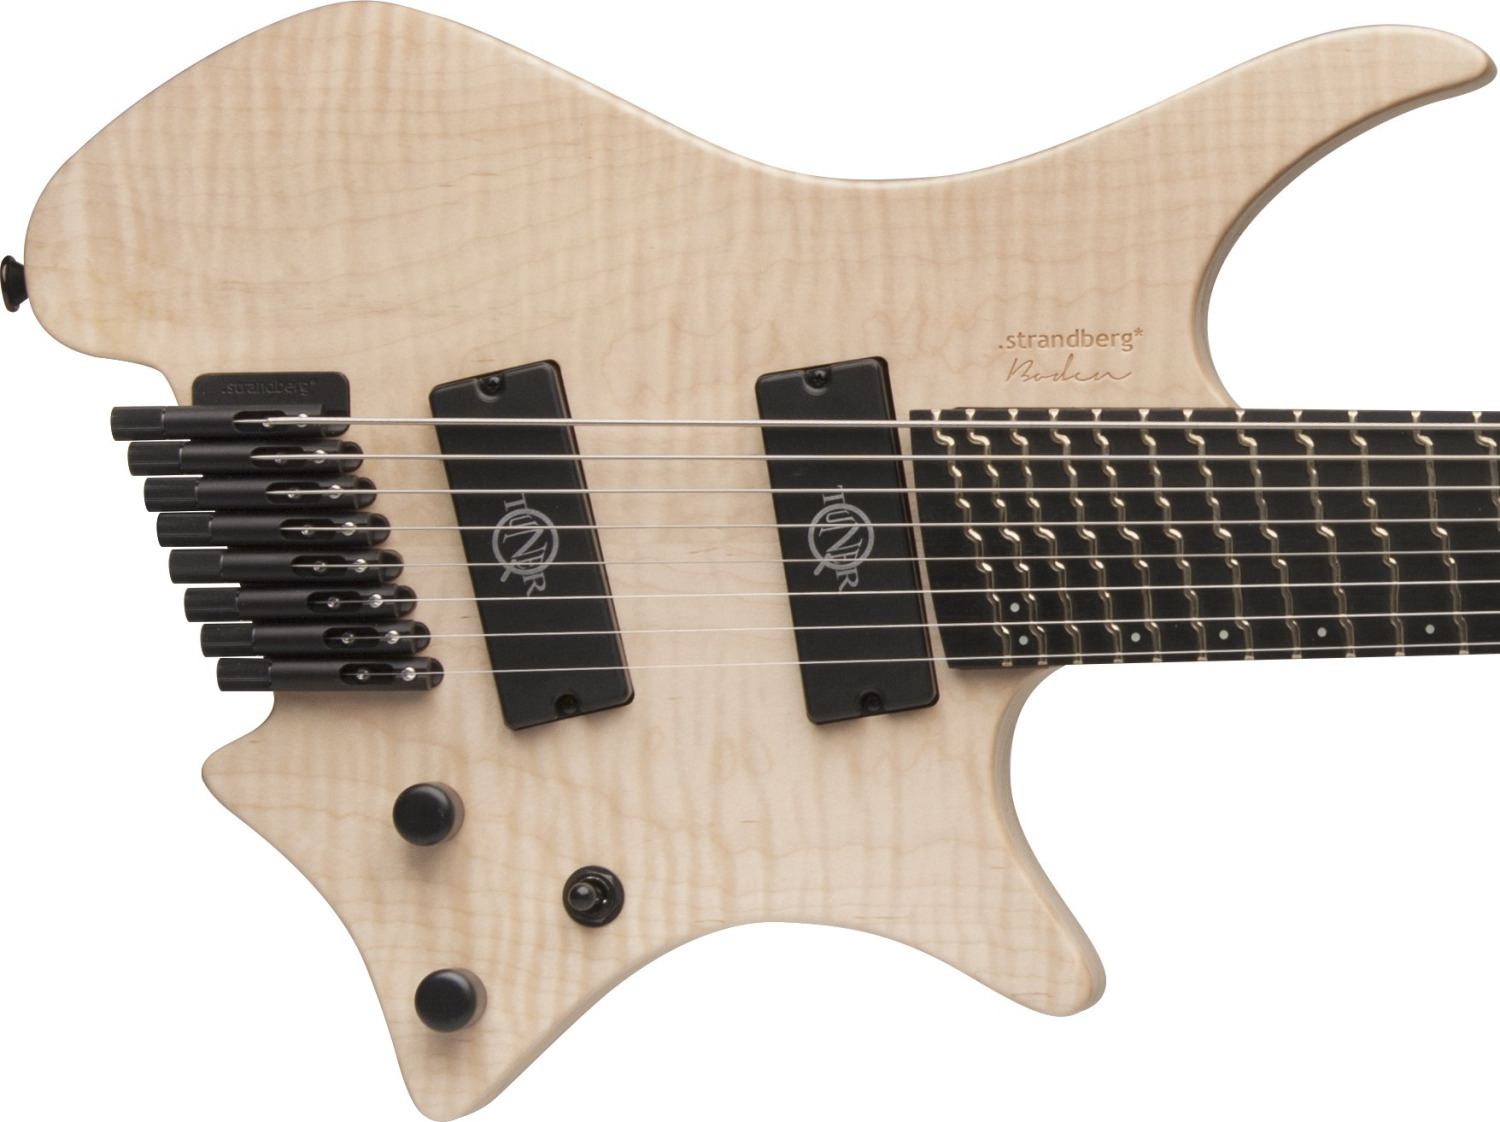 Strandberg Boden 8 string guitar equipped with q-tuner neodymium pickups.